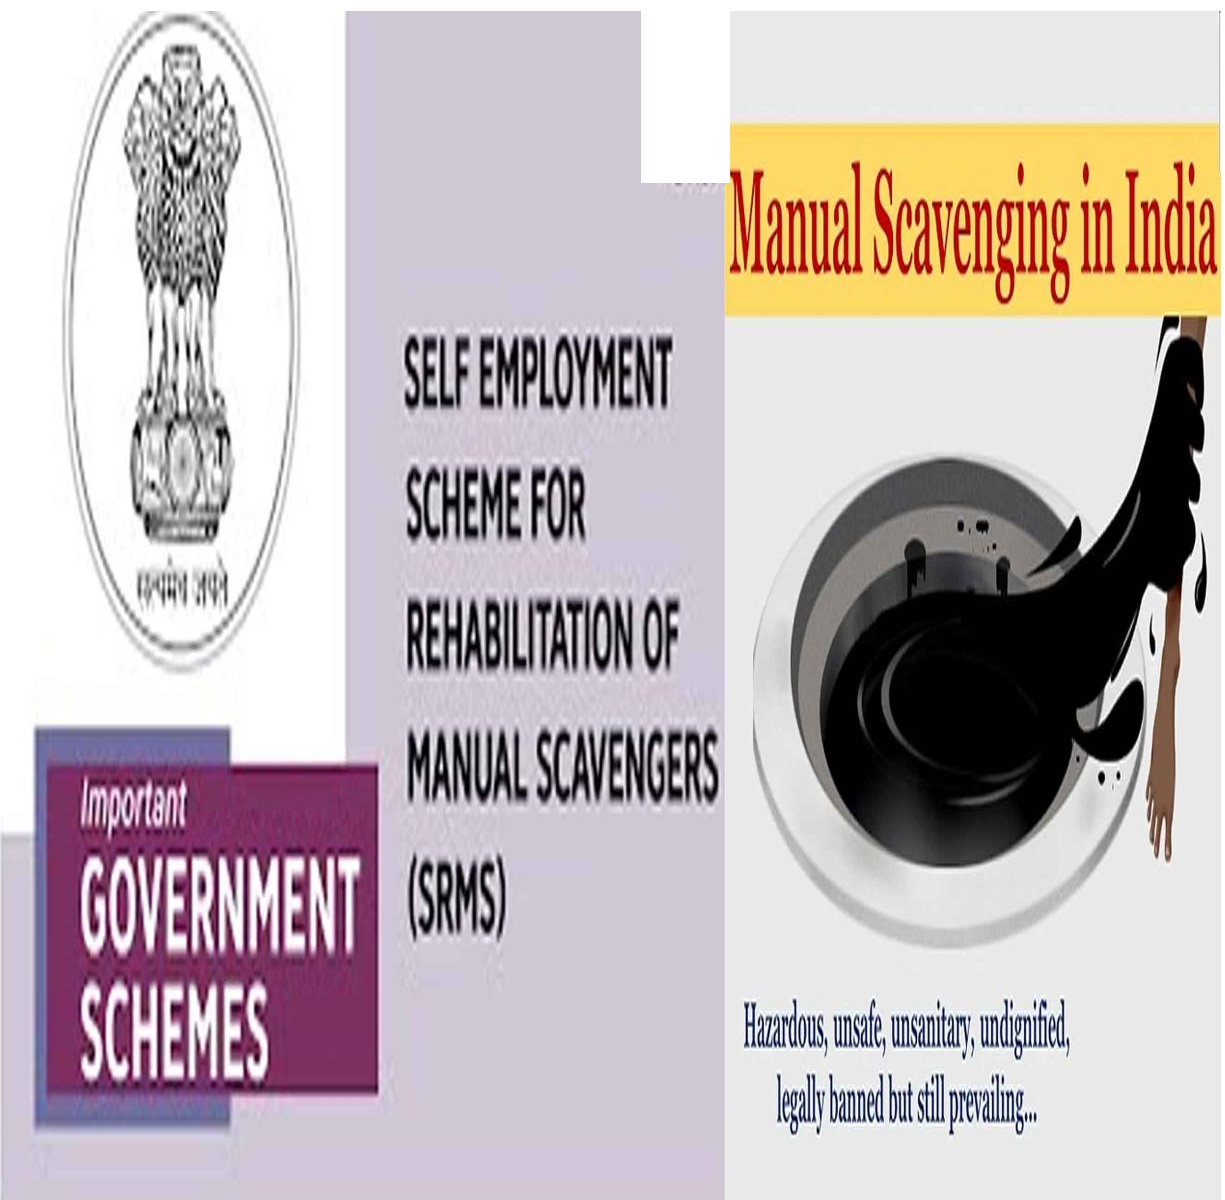 Scheme for Manual Scavengers